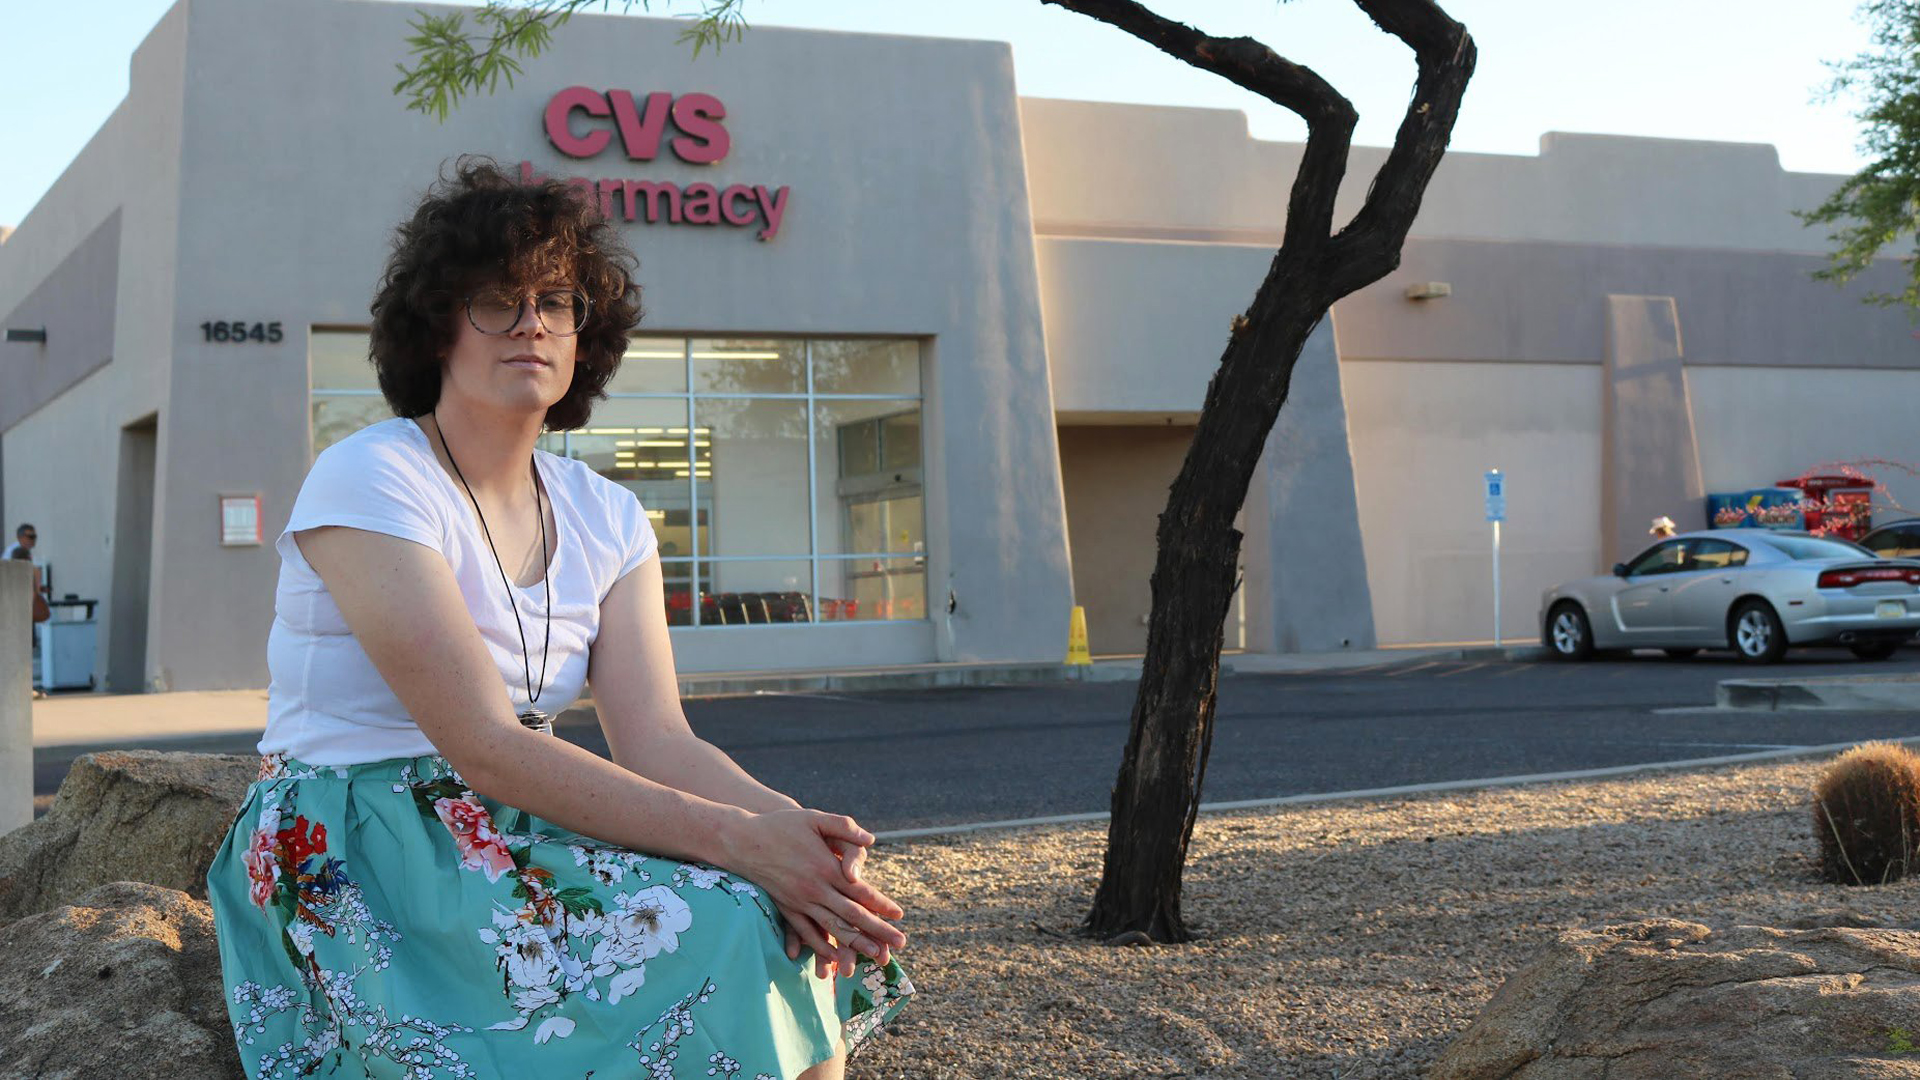 Hilde Hall filed a complaint against a CVS pharmacy in Arizona after she tried to fill her hormone prescription. (Credit: ACLU of Arizona)